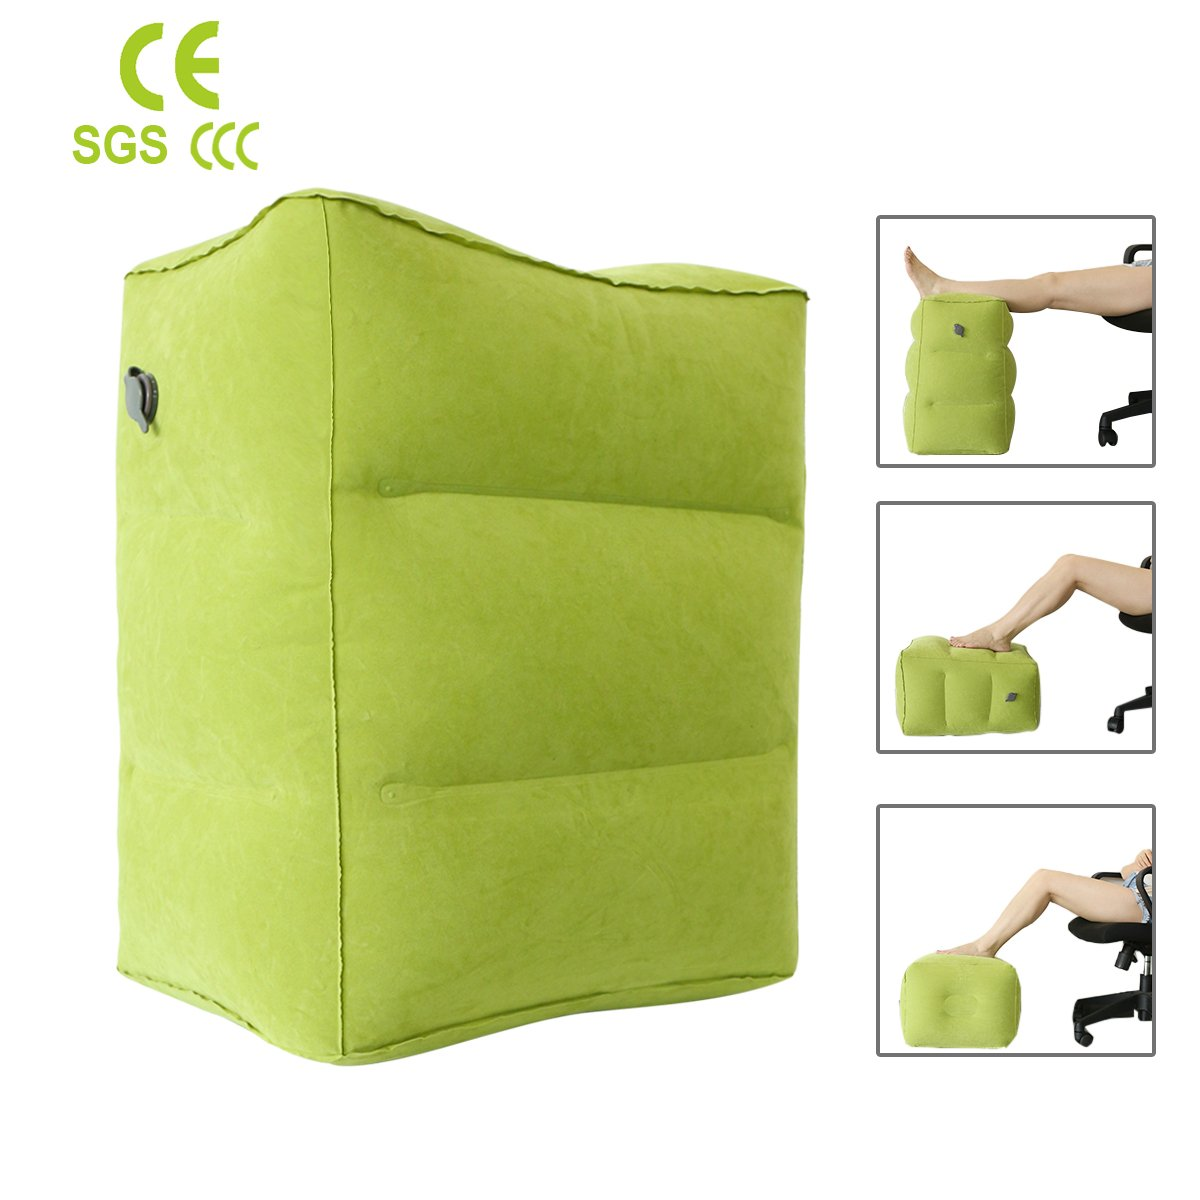 Airplane Pillow for Foot Rest,Portable Travel Accessories Inflatable Blow up Cushion,for Leg Rest on Airplanes, Cars,Home, Trains, Office,and Kids to Sleep on Long Flights or Journeys